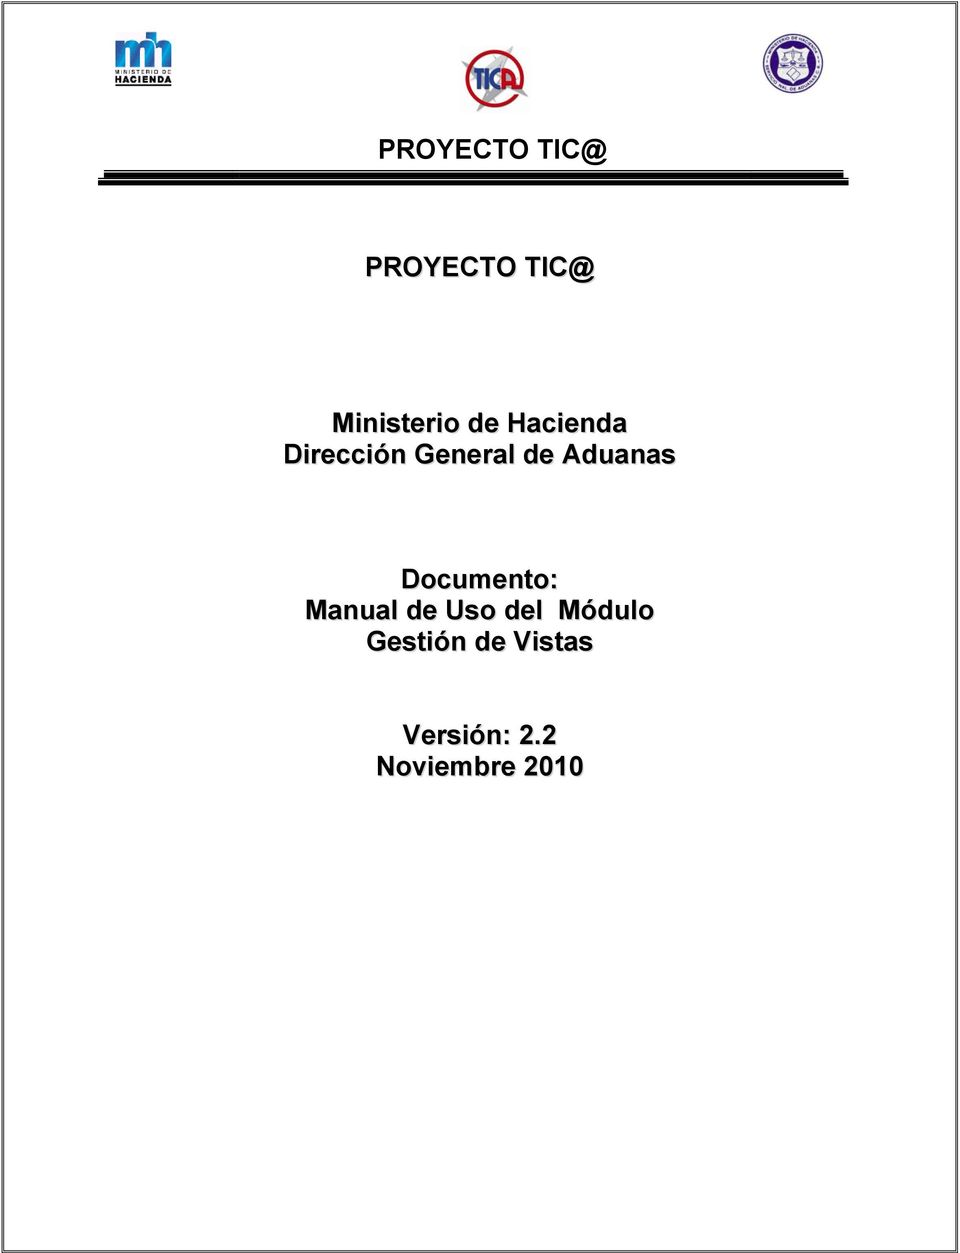 Documento: Manual de Uso del Módulo